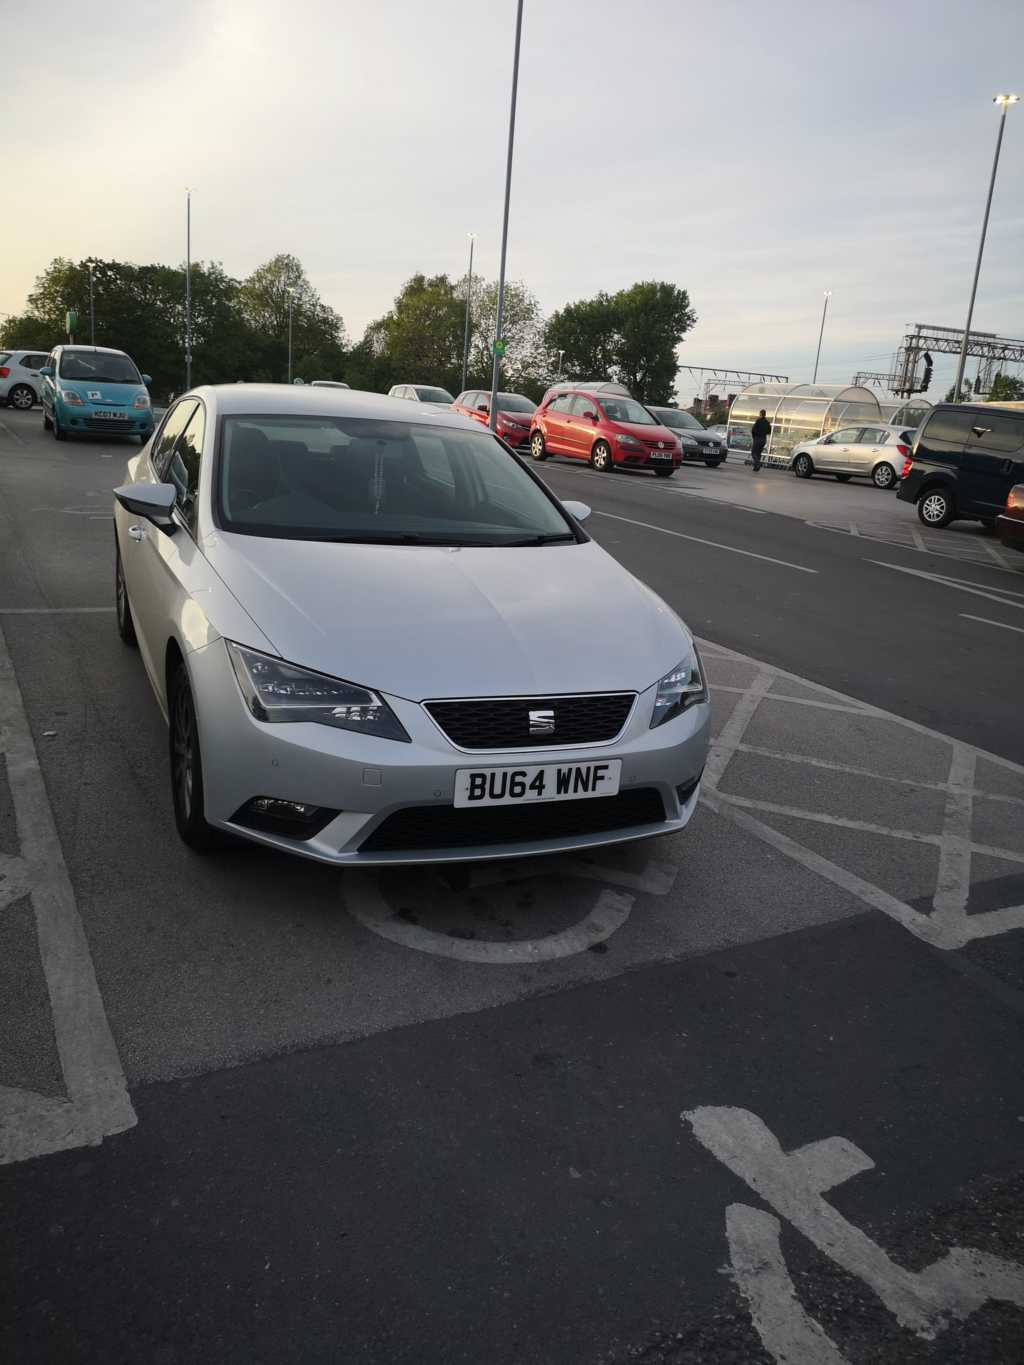 BU64 WNF is an Inconsiderate Parker